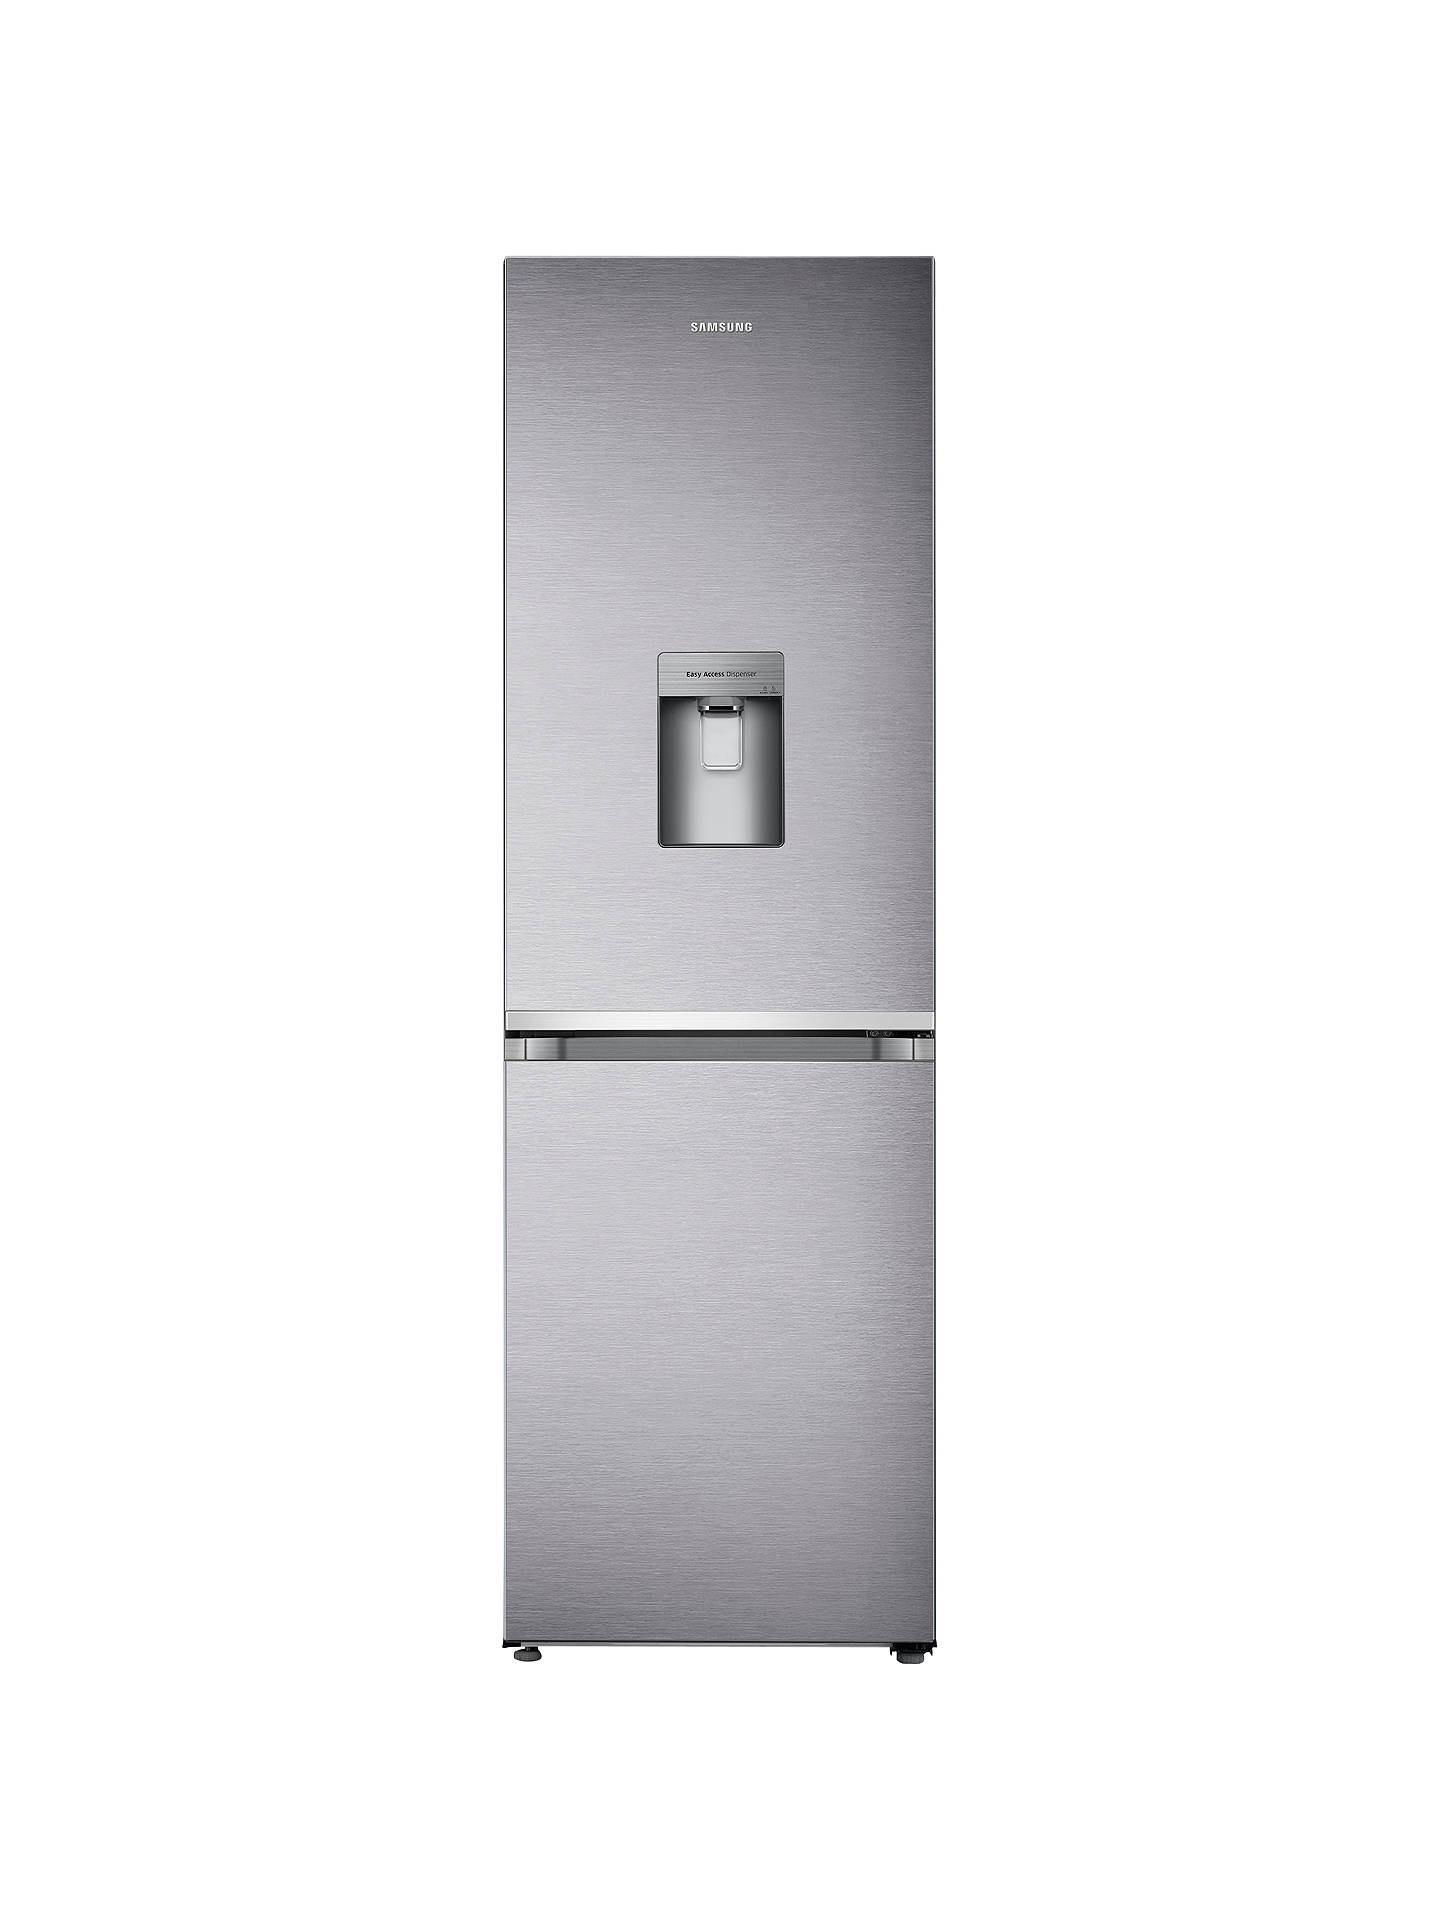 Buy Samsung RB38J7535SR Freestanding Fridge Freezer, A++ Energy Rating, 60cm Wide, Stainless Steel Online at johnlewis.com